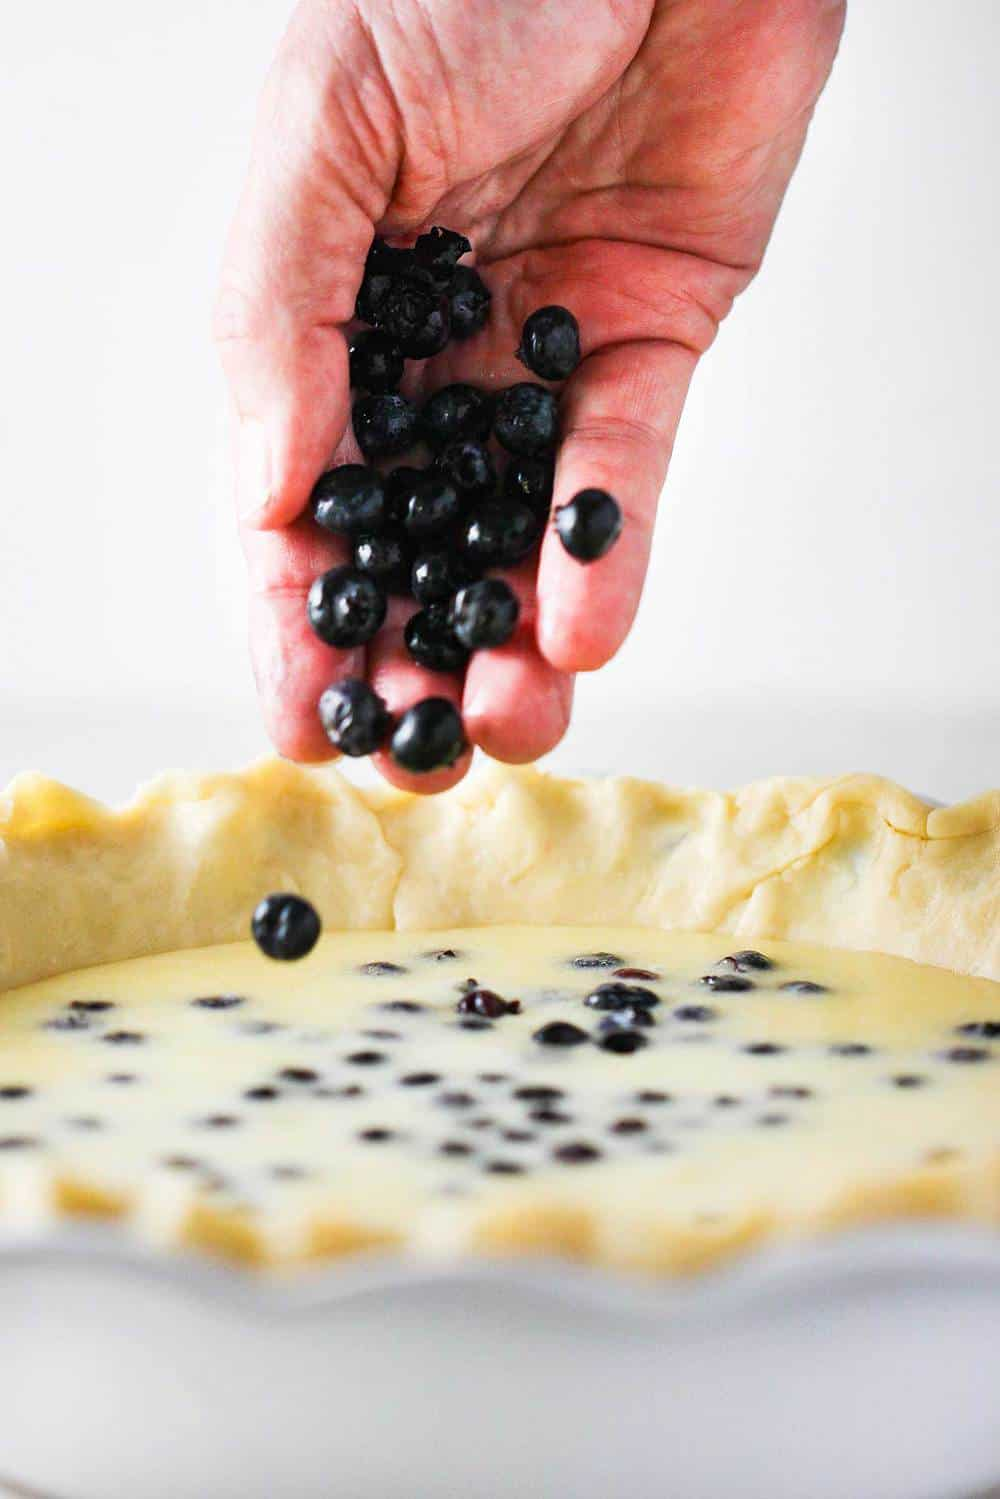 A hand dropping blueberries into a custard pie.